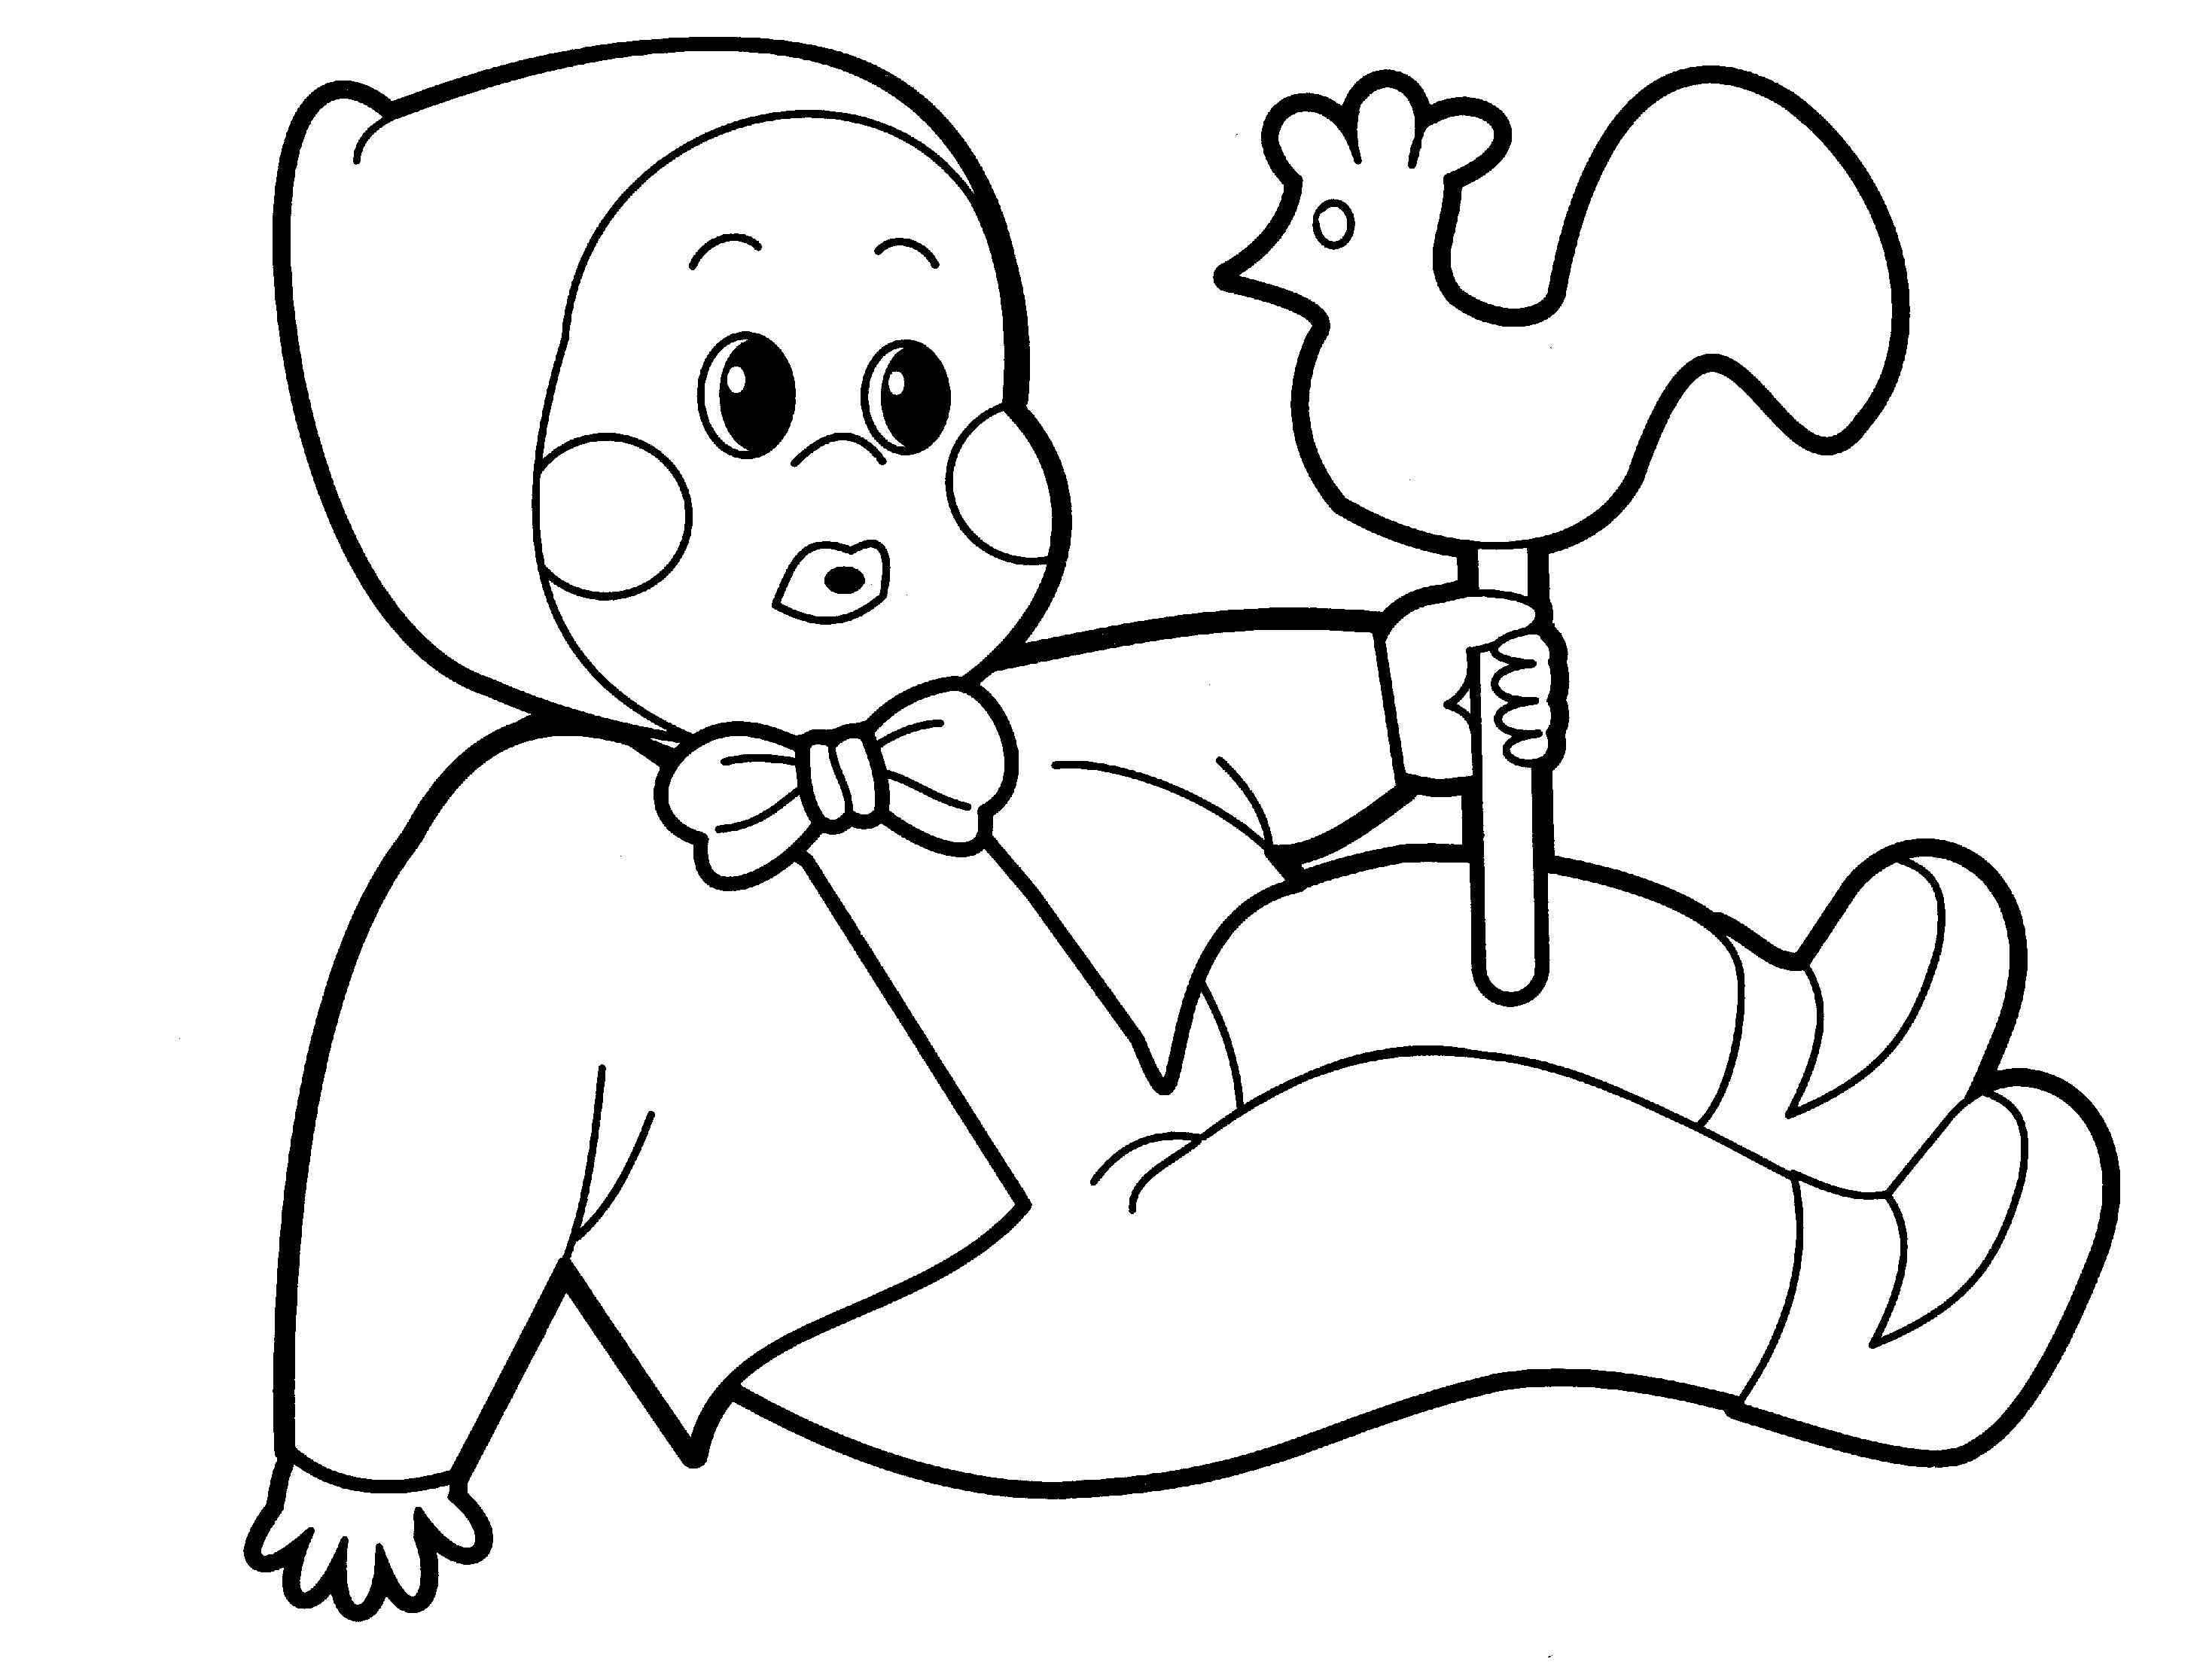 baby doll coloring pages printable - photo#38